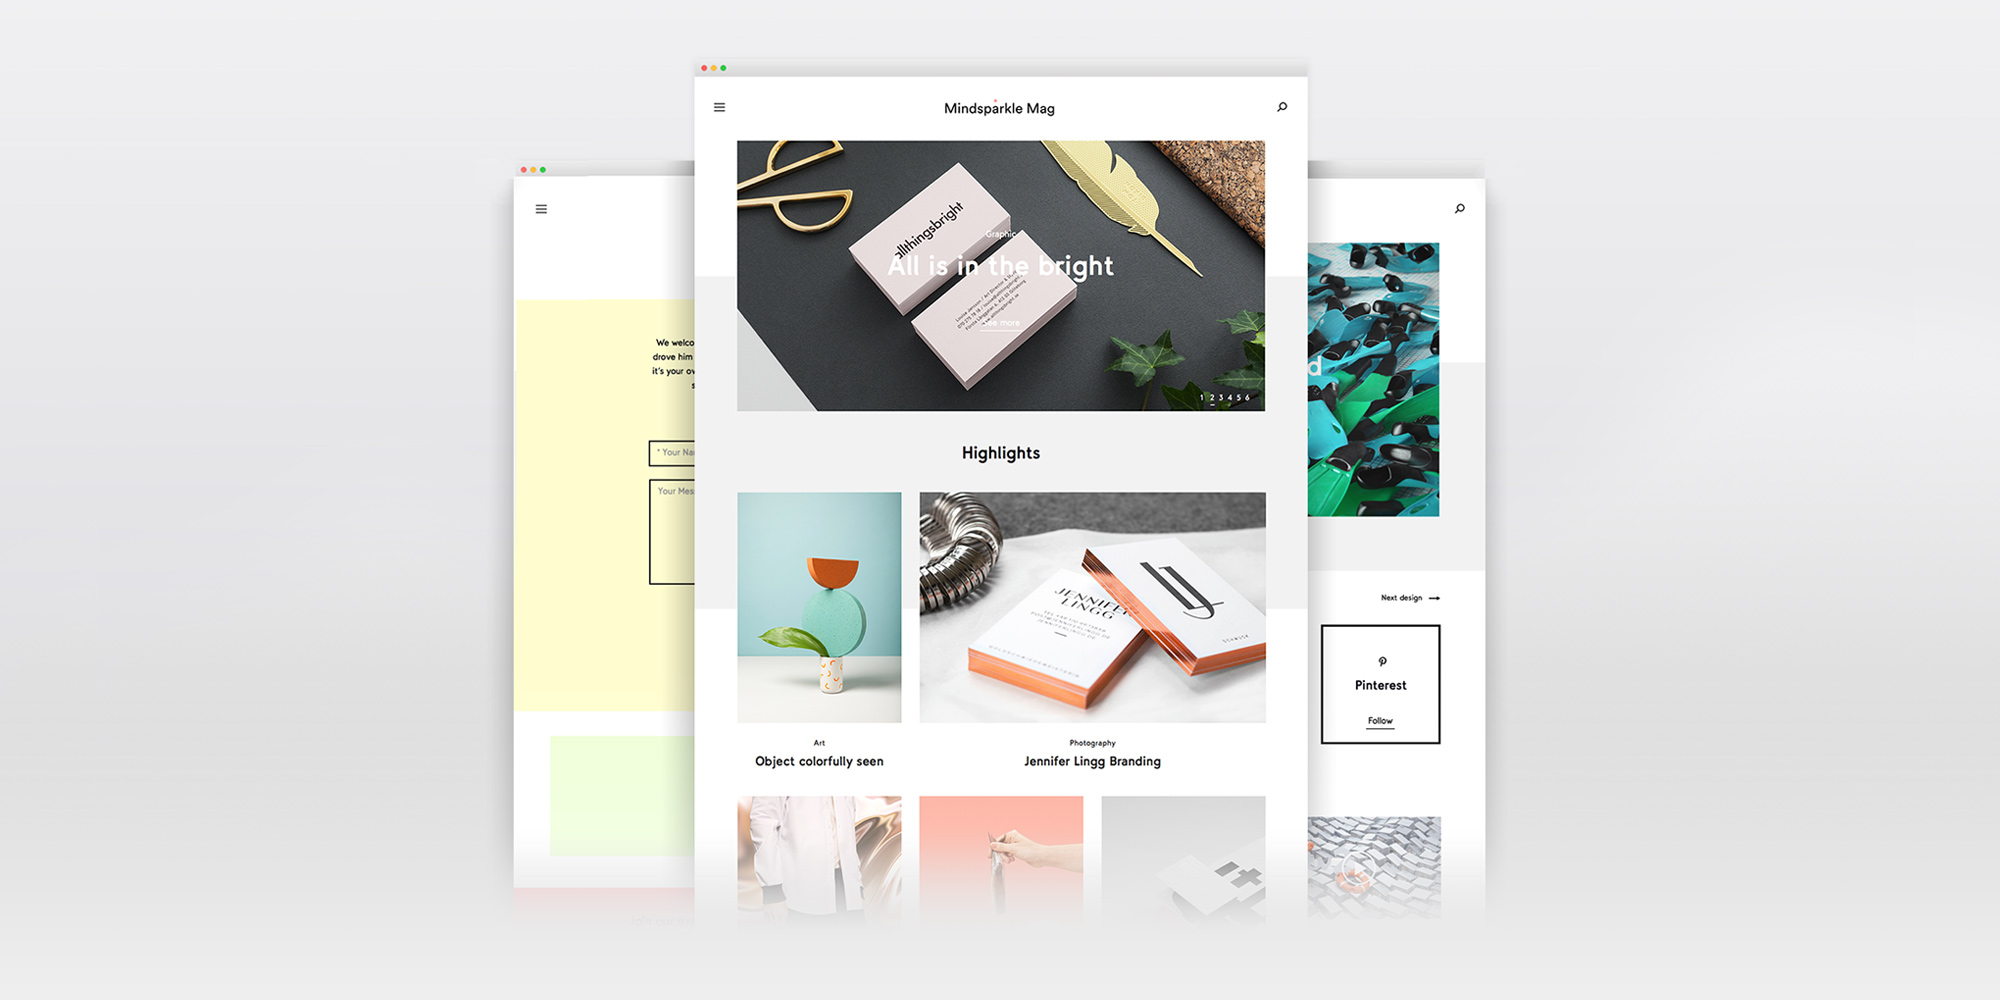 Design Inspiration Blog Mindsparkle Mag Shows The Best Beautiful Design  Collection Of Branding, Video,